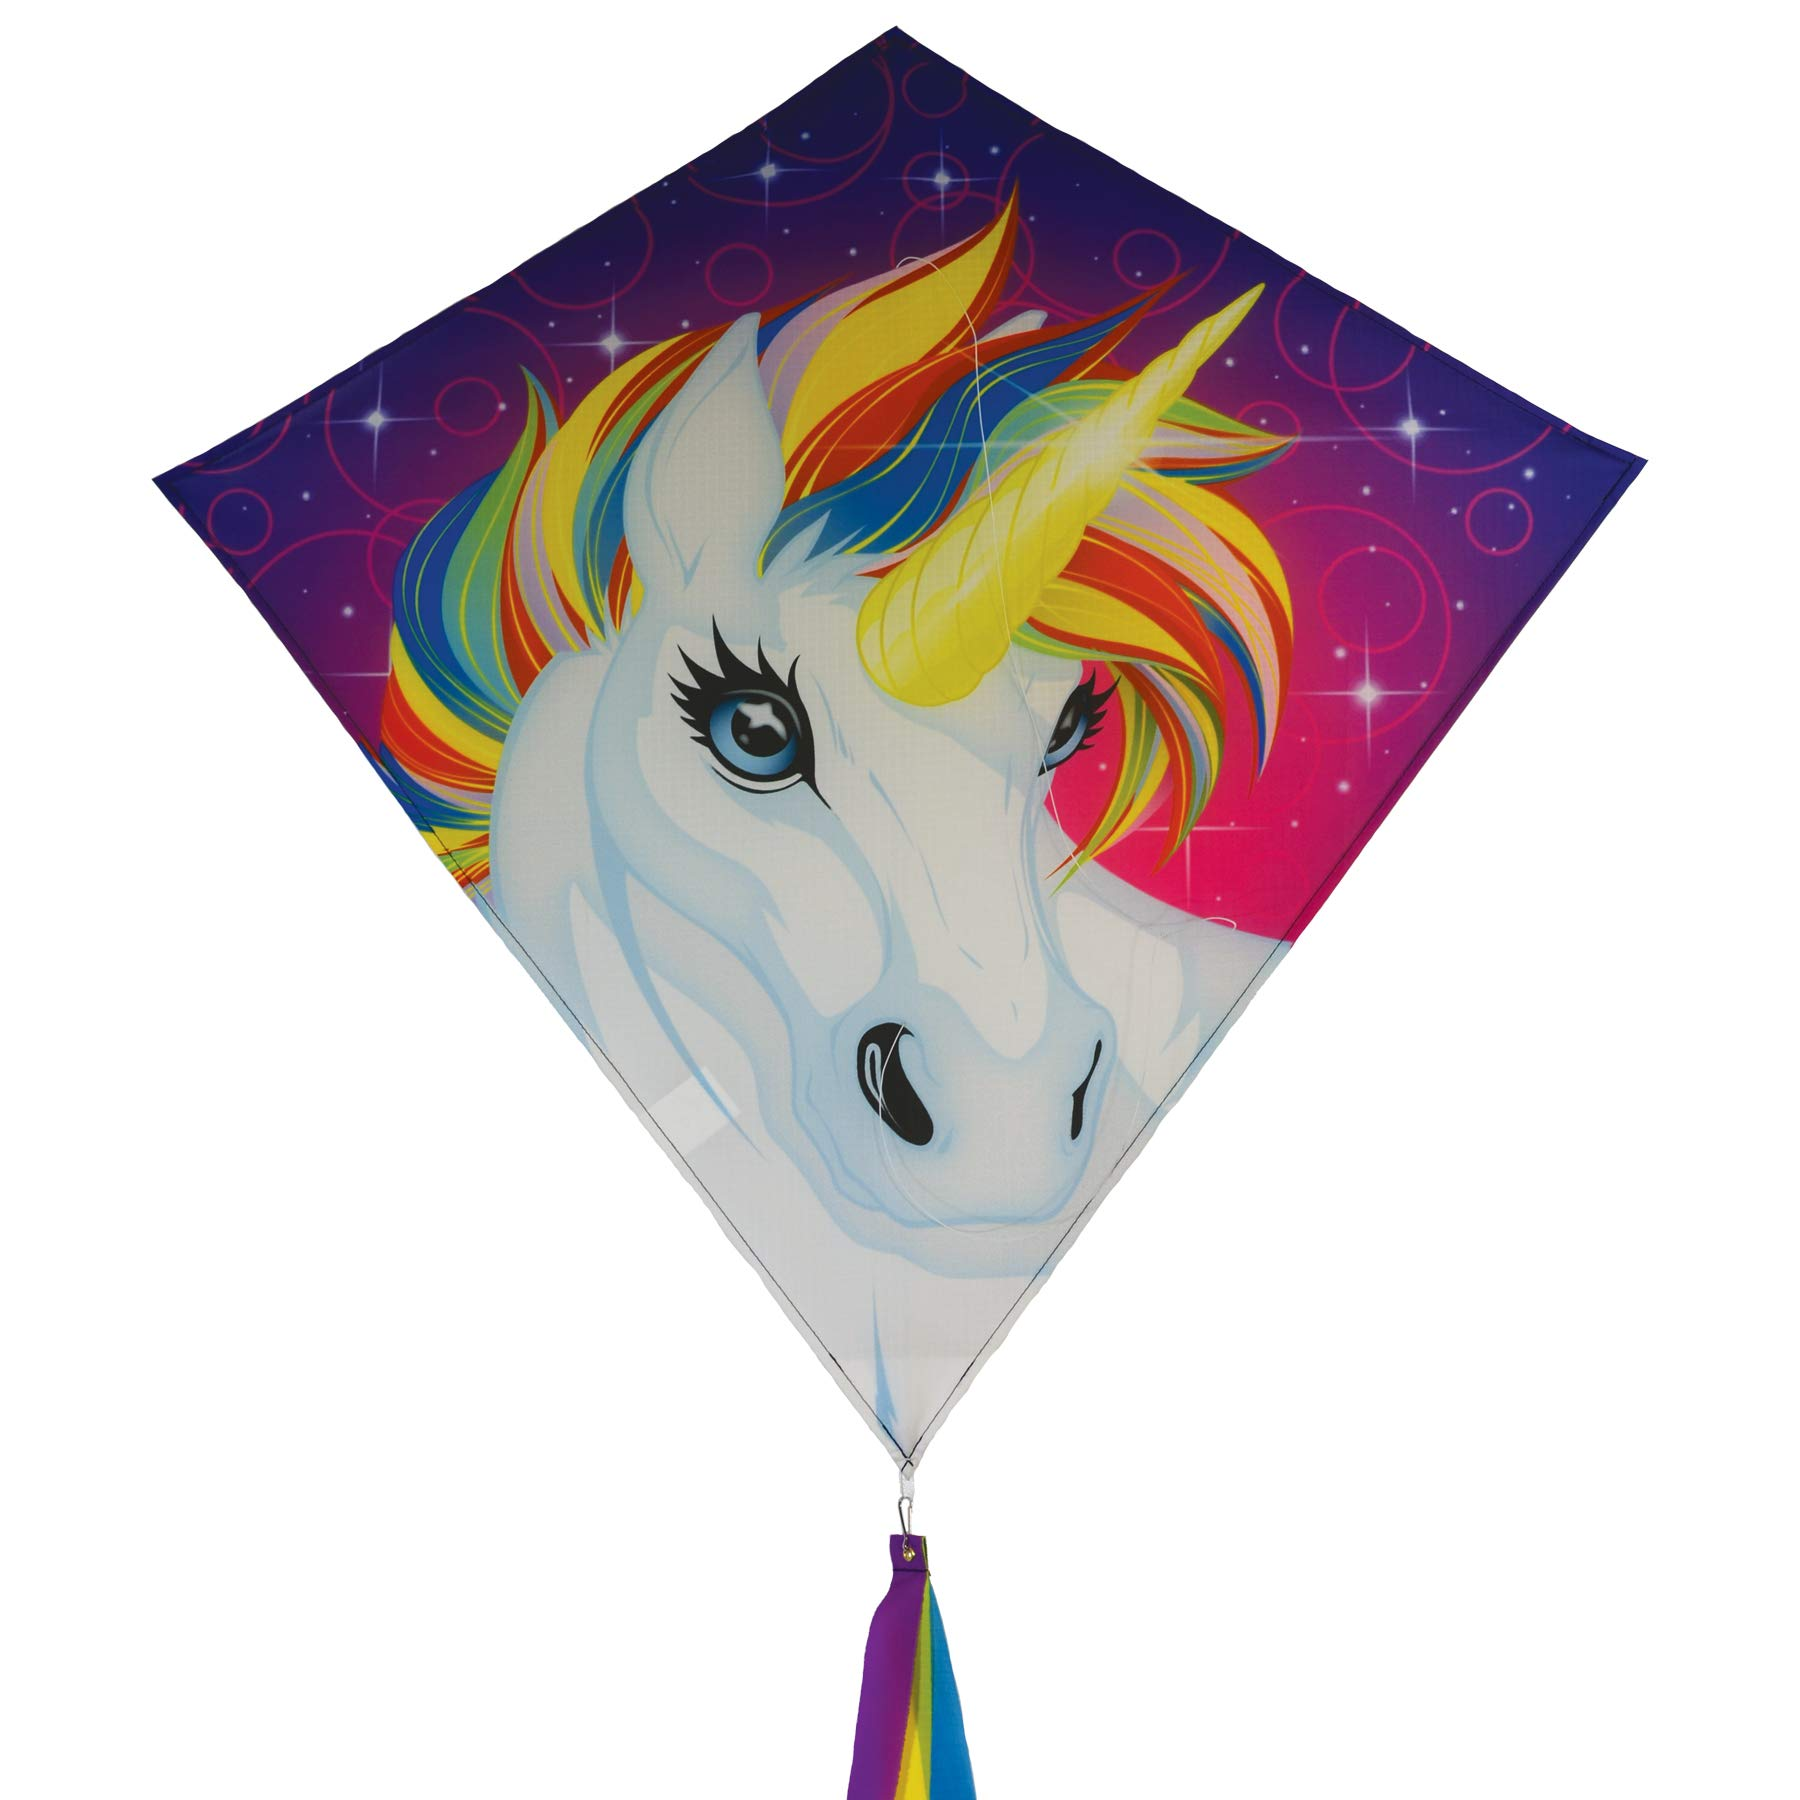 In the Breeze 3259 - 30'' Diamond Kite - Fun, Easy Flying Unicorn Kite by In the Breeze